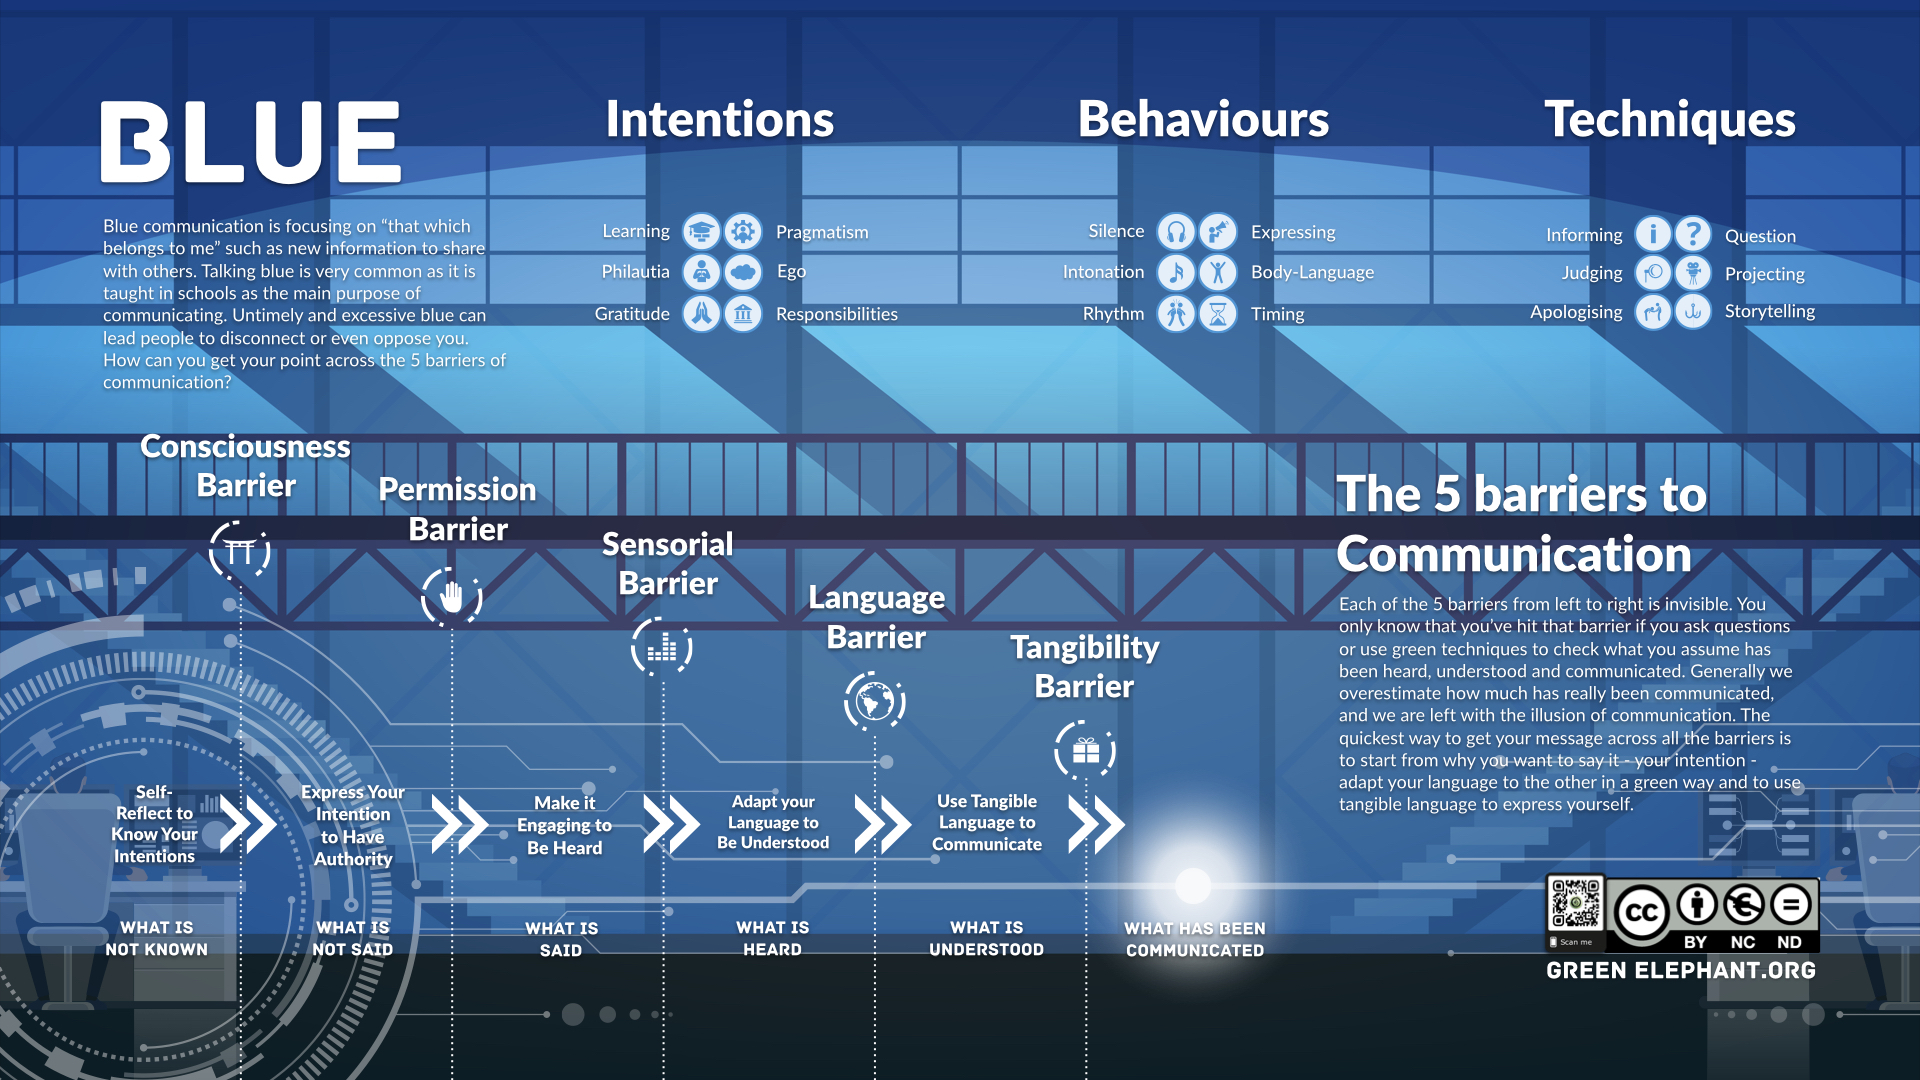 The 5 Barriers of Blue Communication Infographic